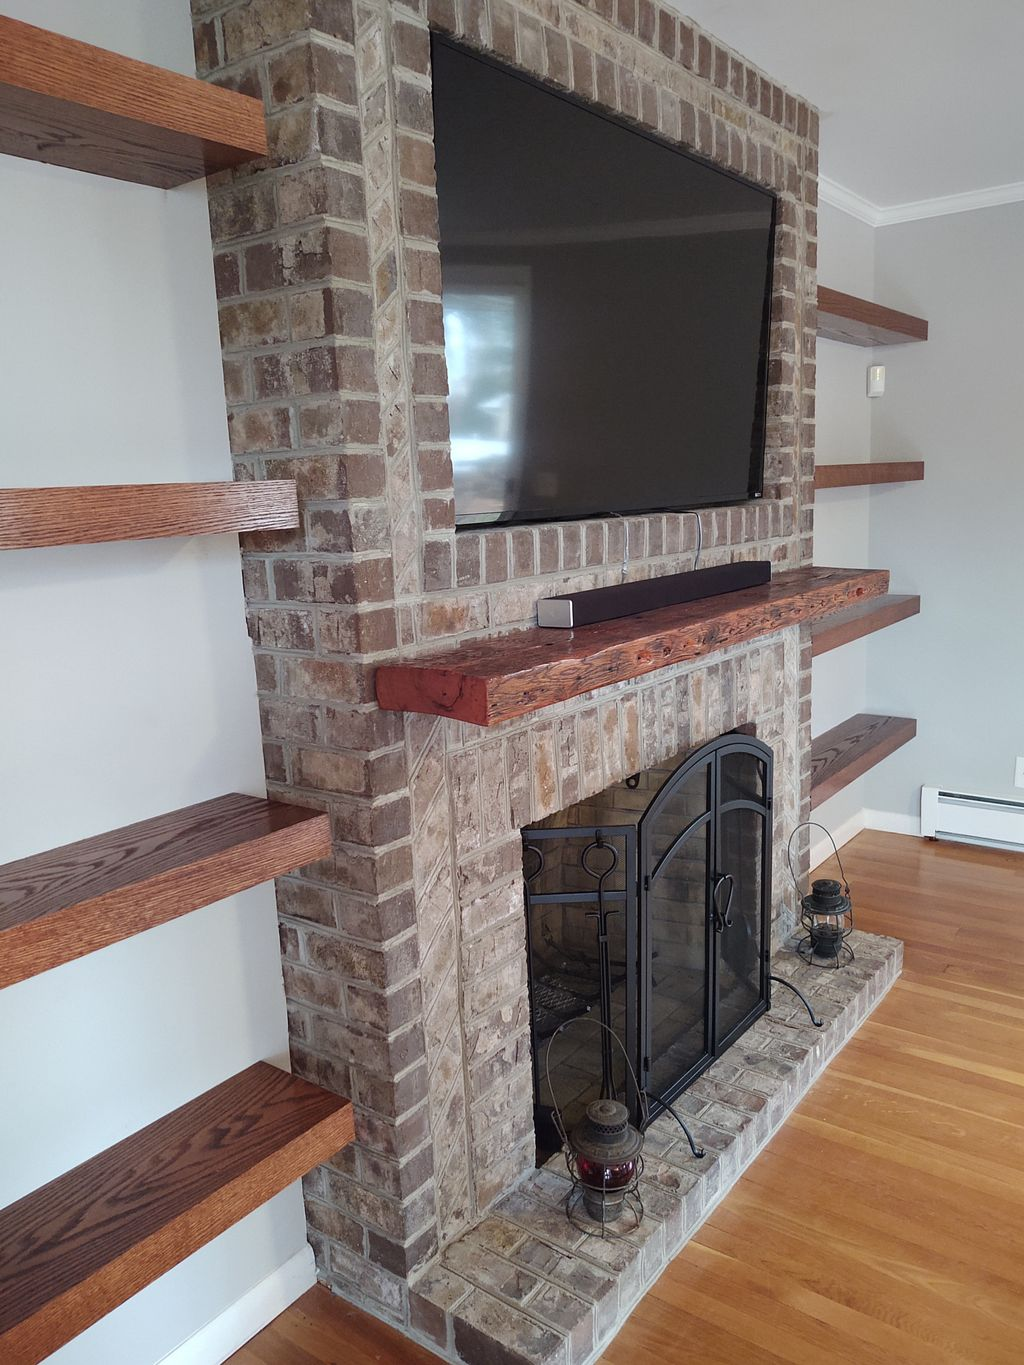 Fireplace refaced with floating shelves